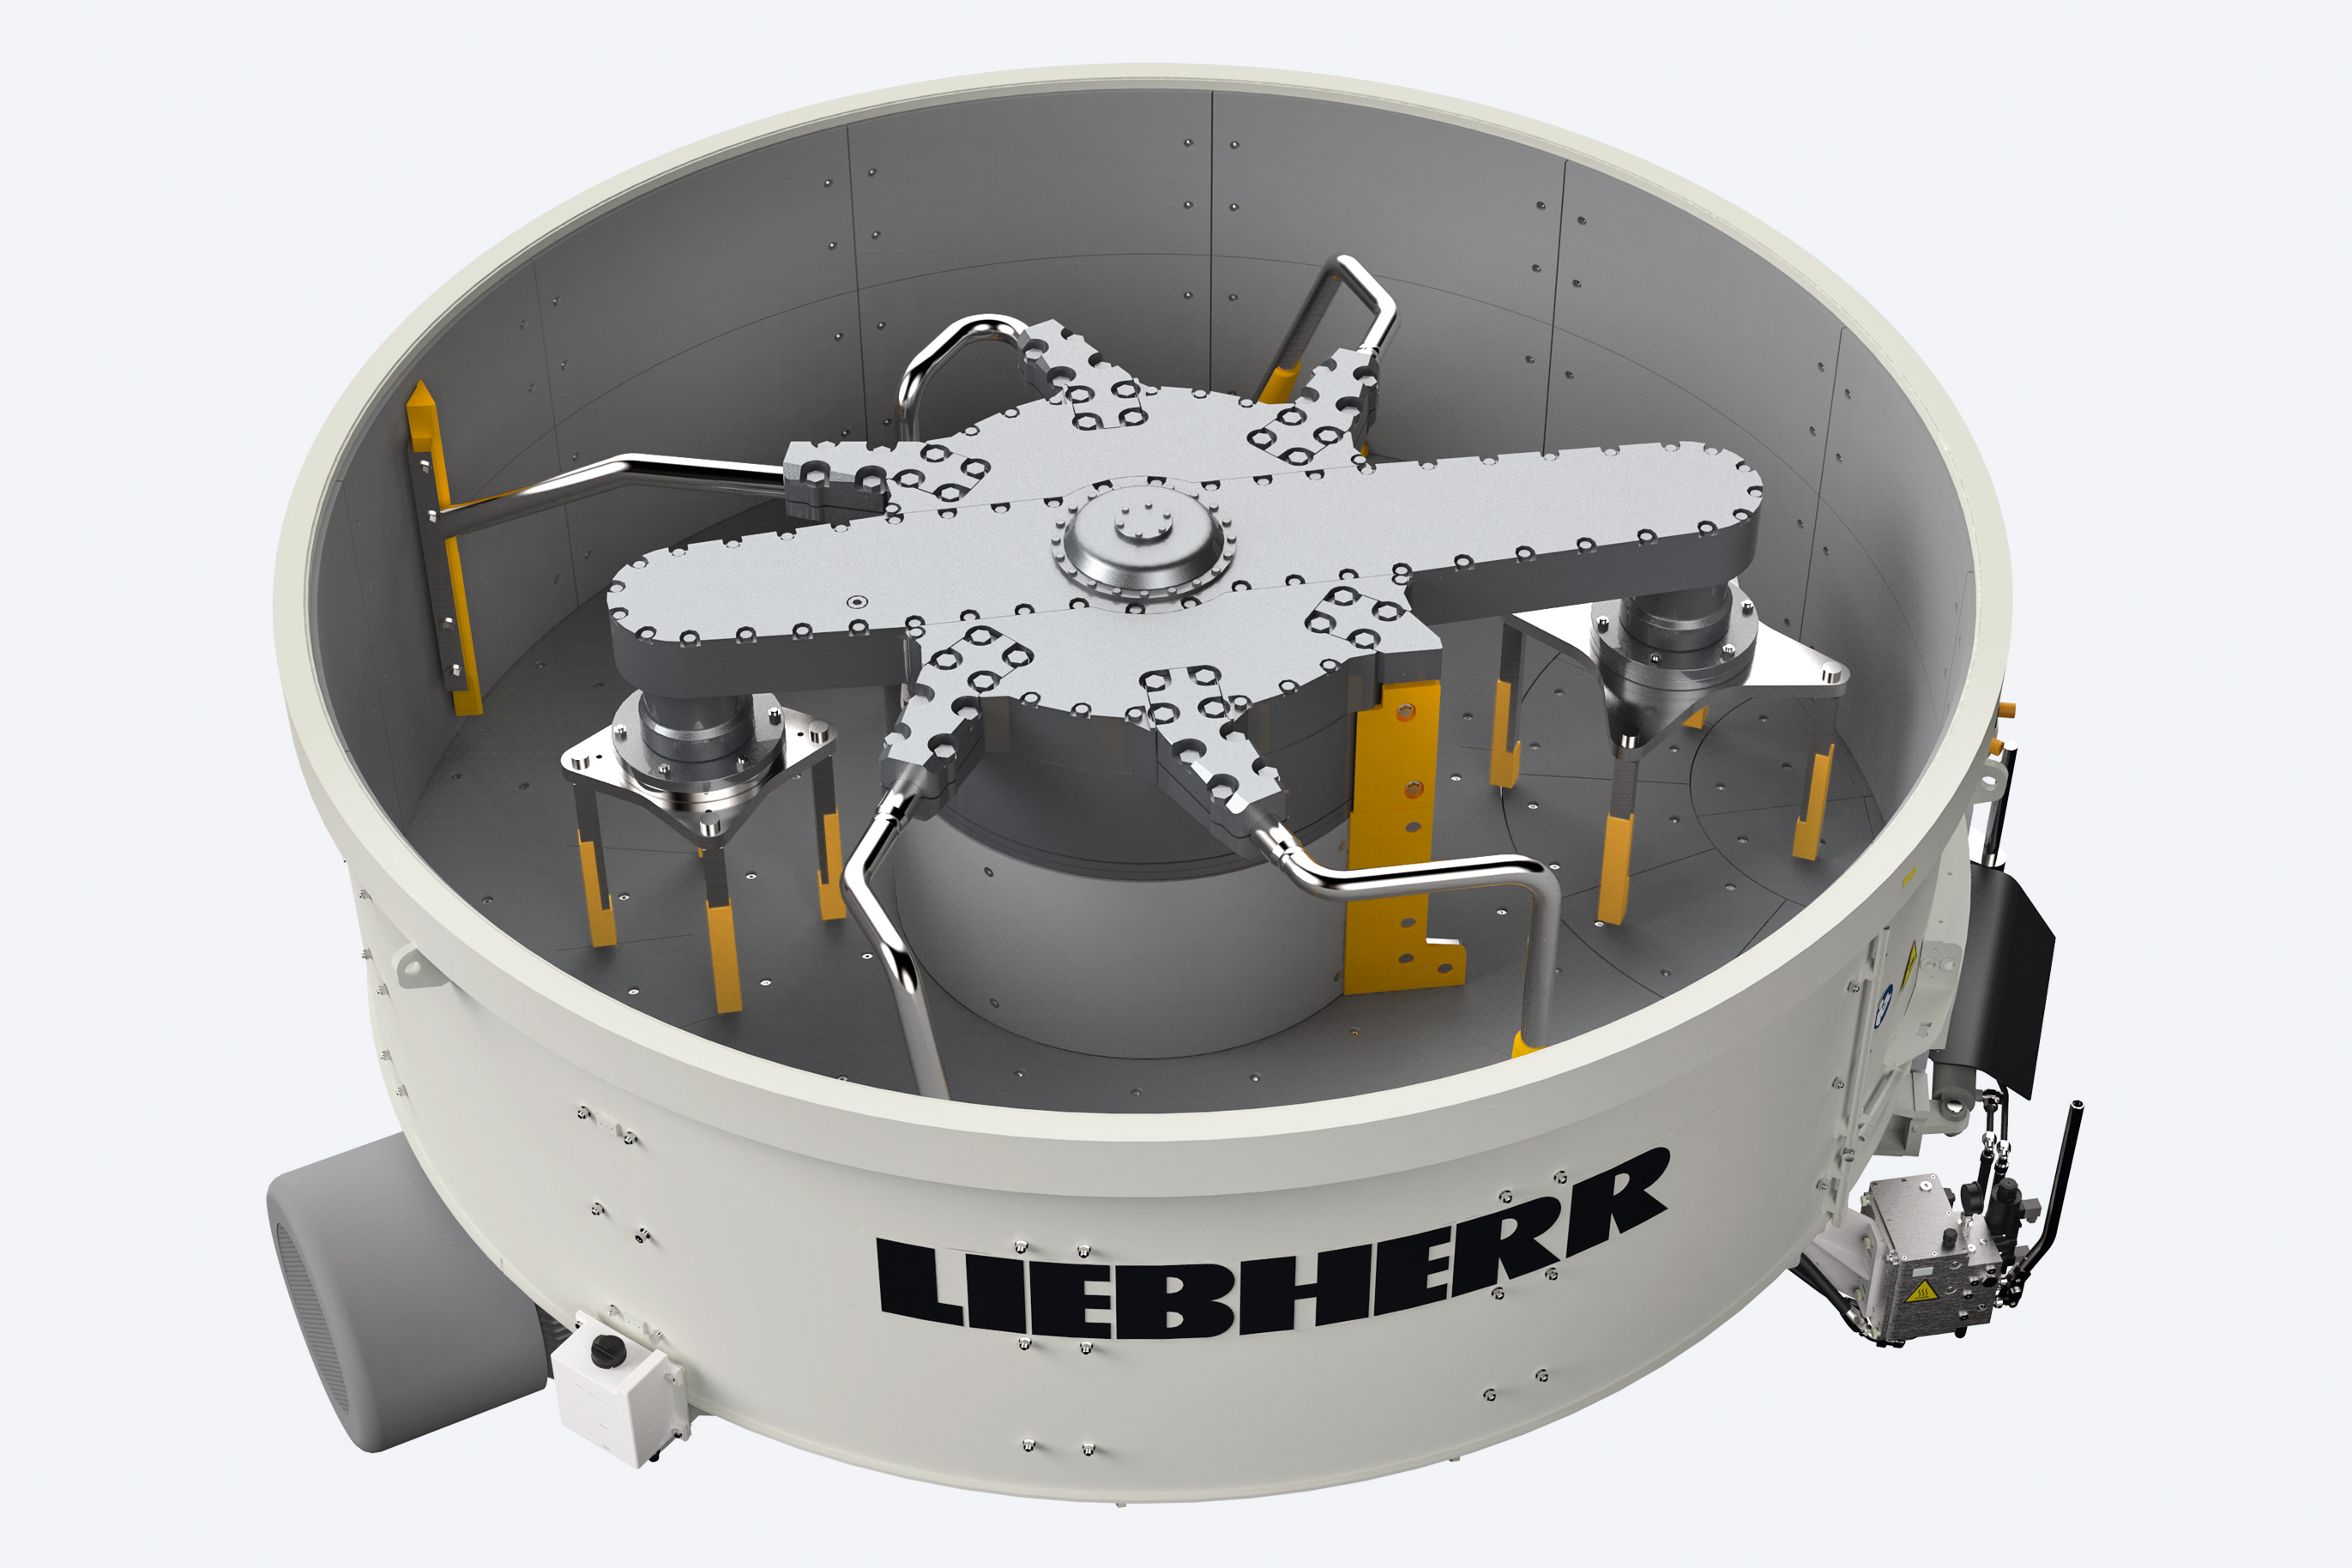 Mixing systems - Liebherr